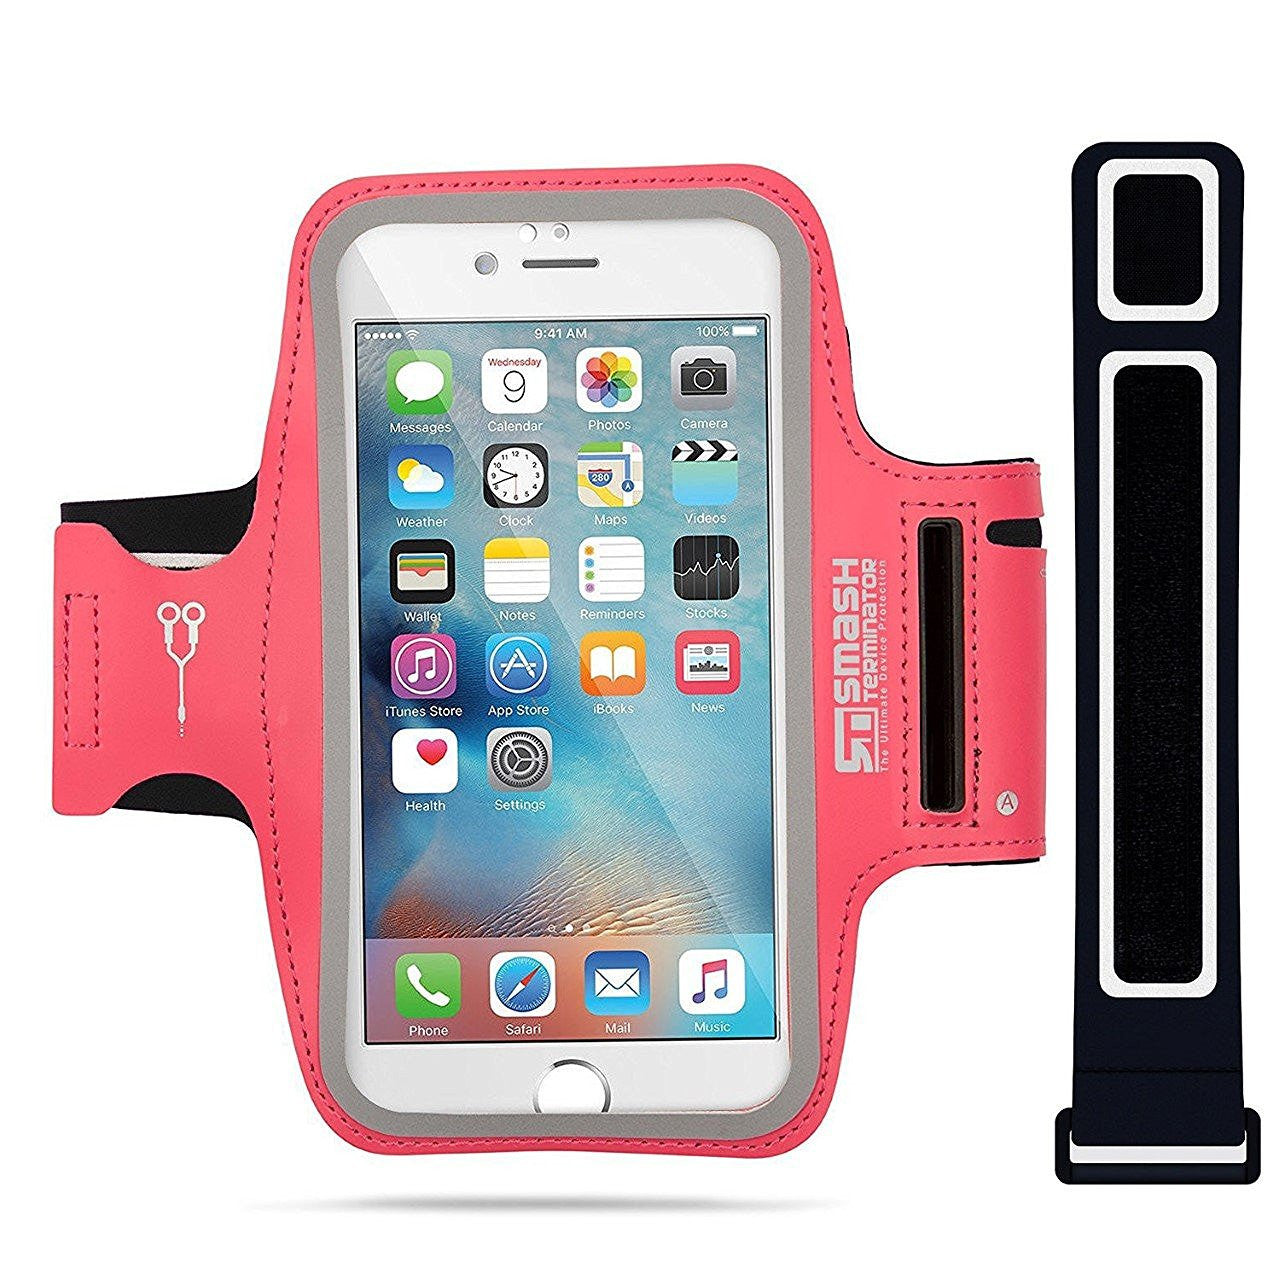 "Pro Series Sports Armband for Latest Smartphones up to 5.2"" display. (Pink)"